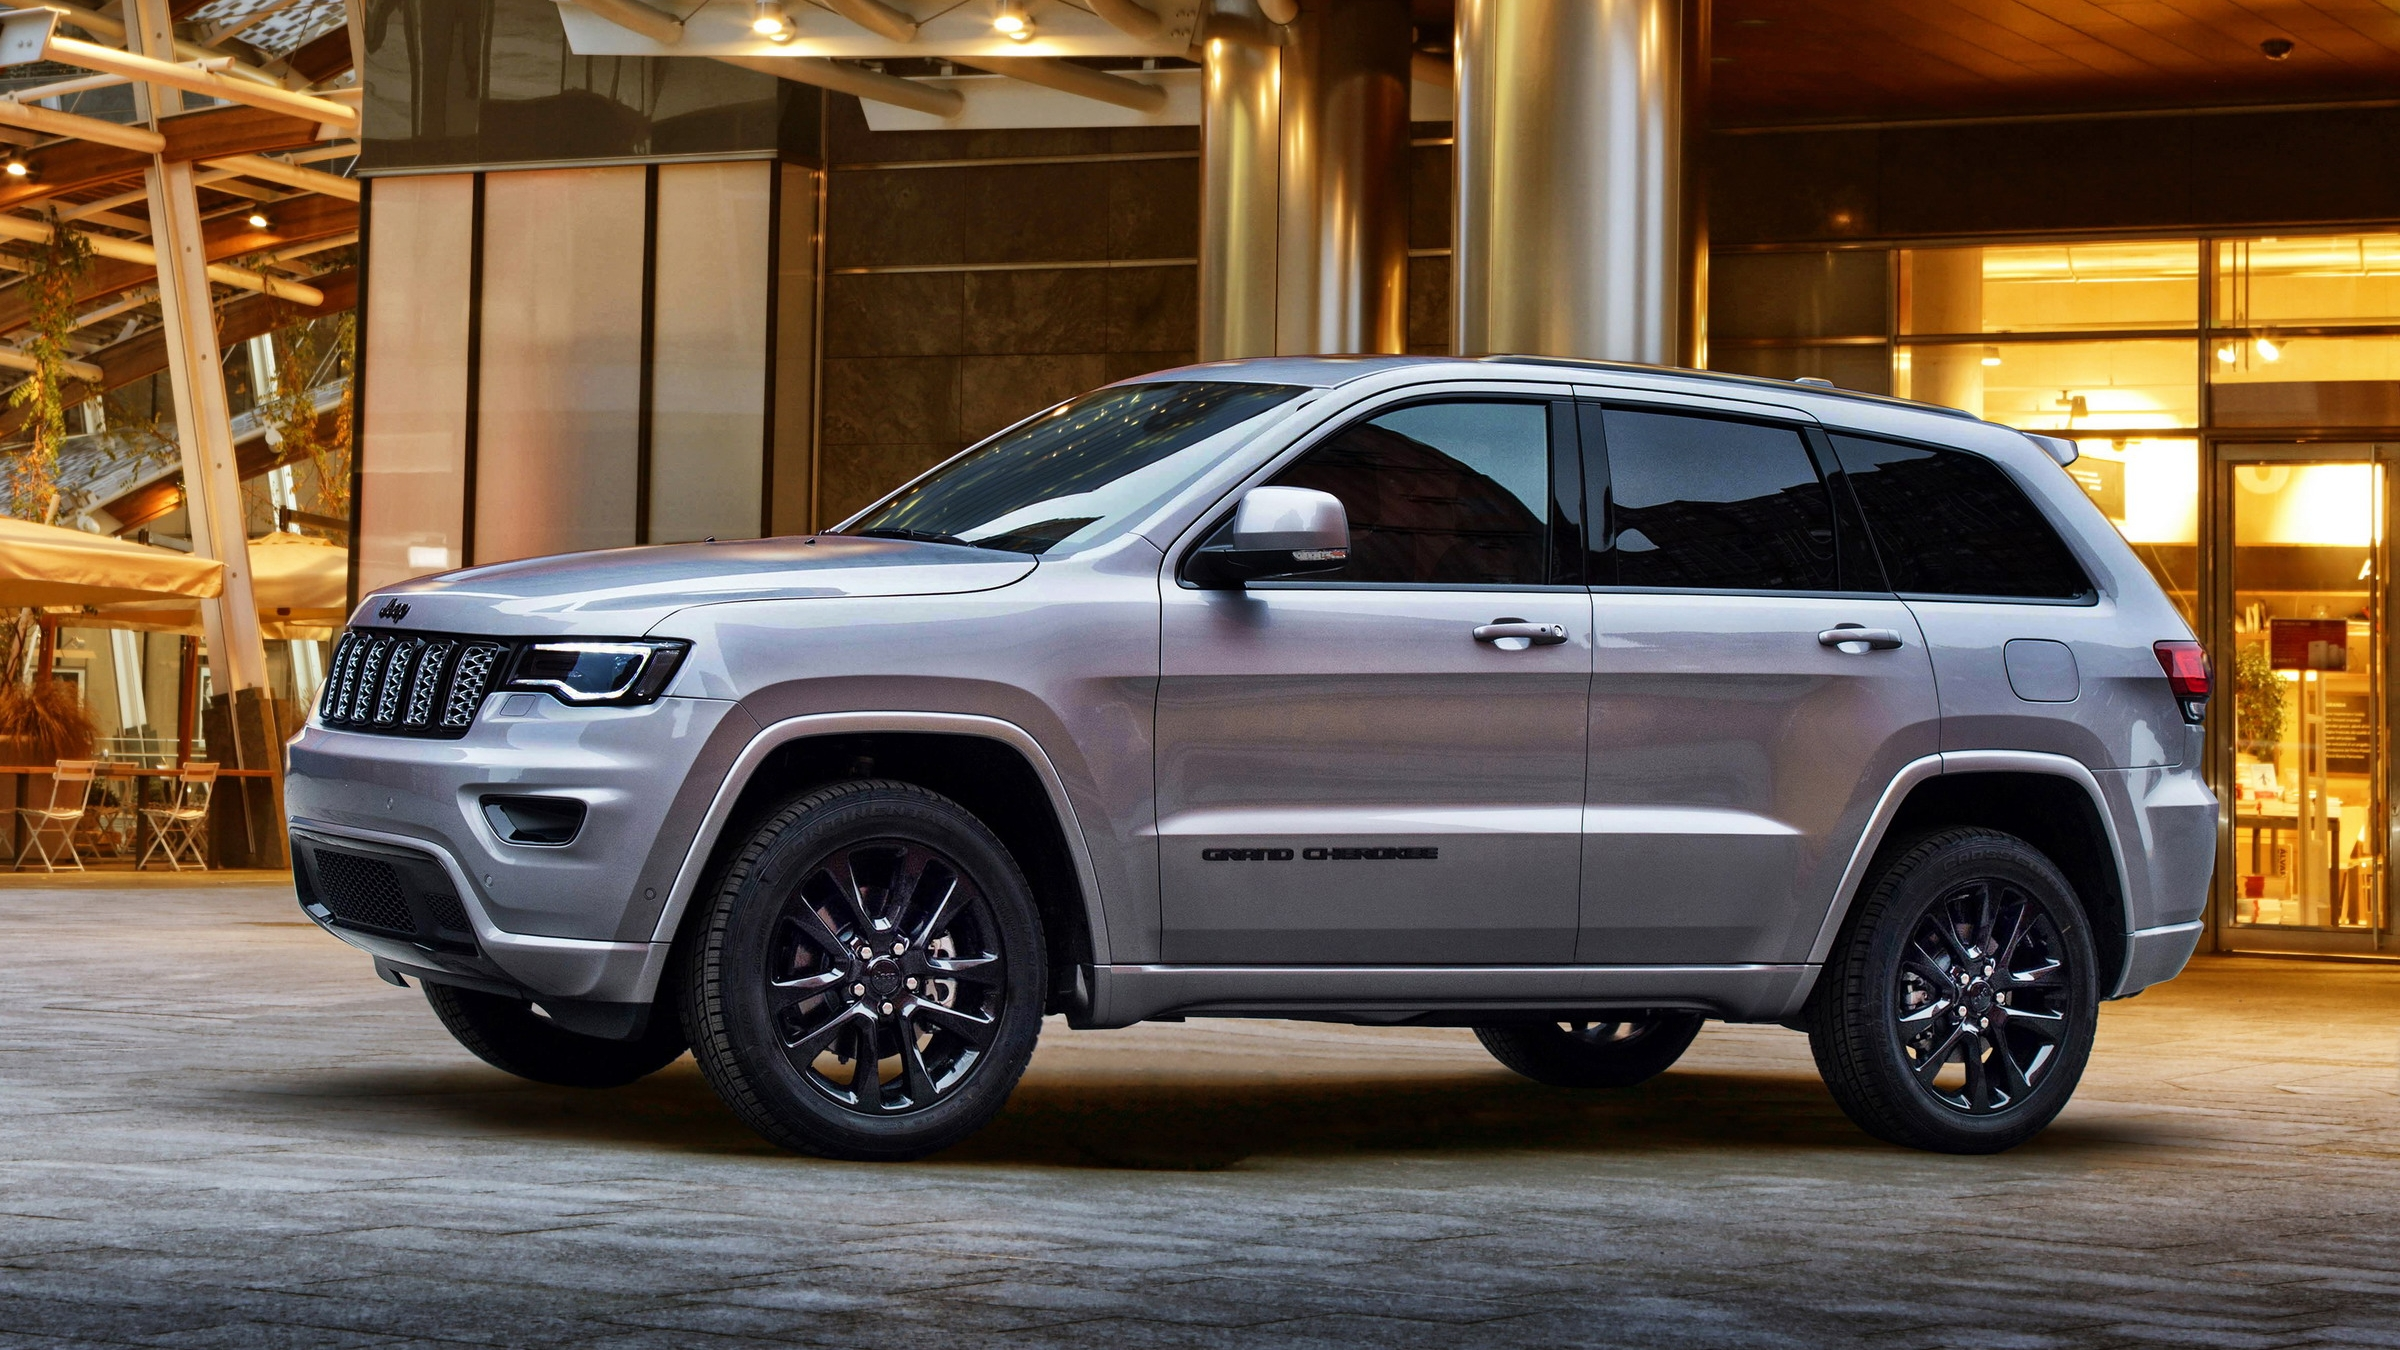 2017 Jeep Grand Cherokee Night Eagle Pictures, Photos ...